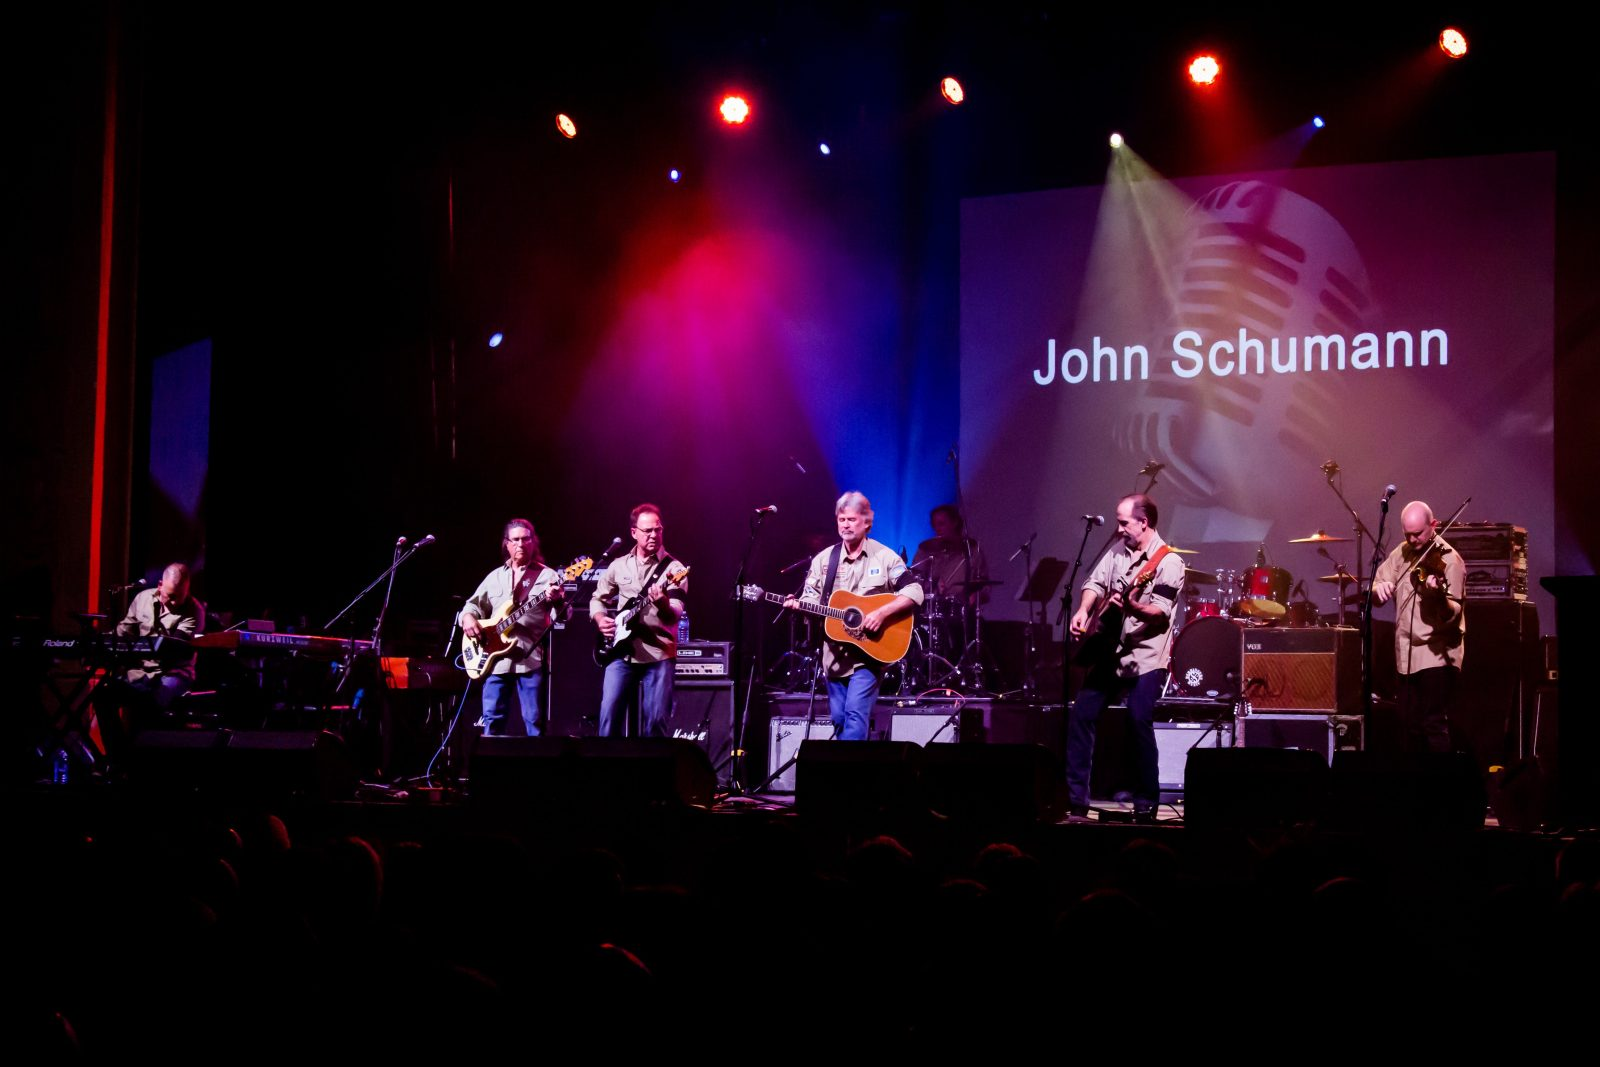 John Schumann and The Vagabond Crew - at The Imperial Hotel Eumundi on Sunday 20 October